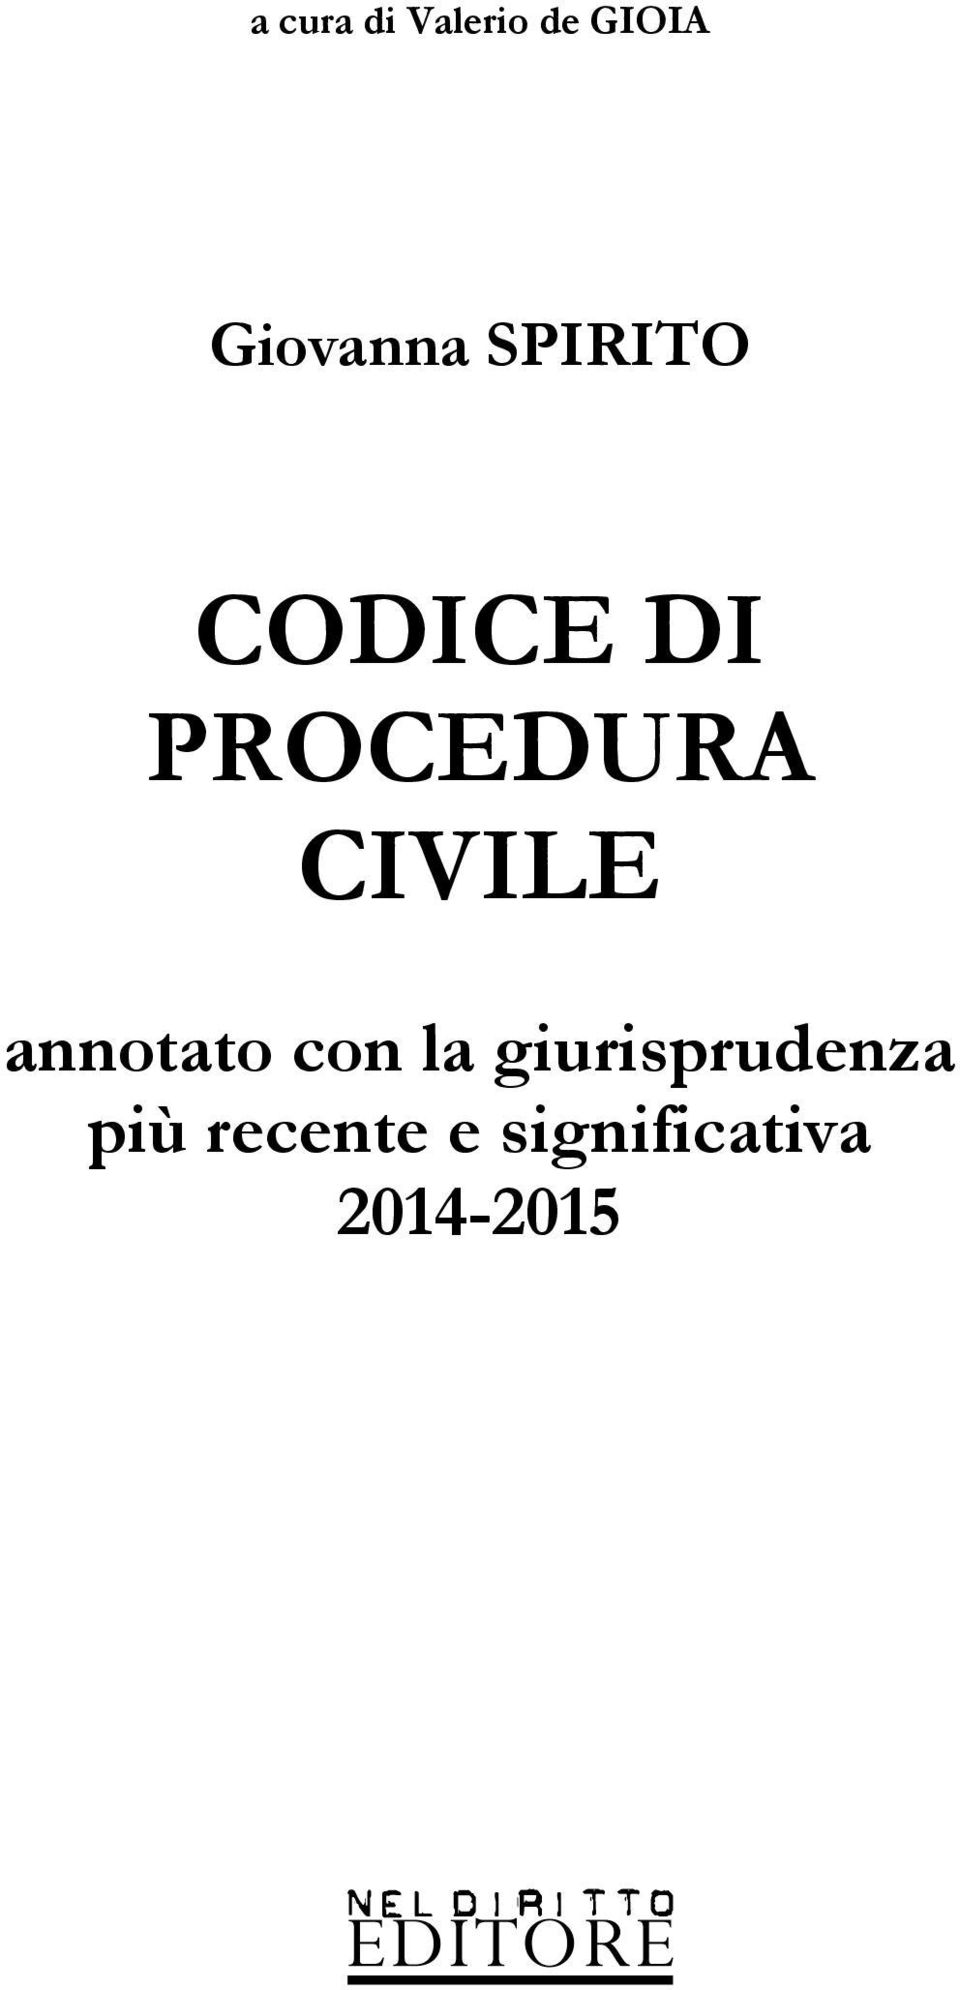 PROCEDURA CIVILE annotato con la